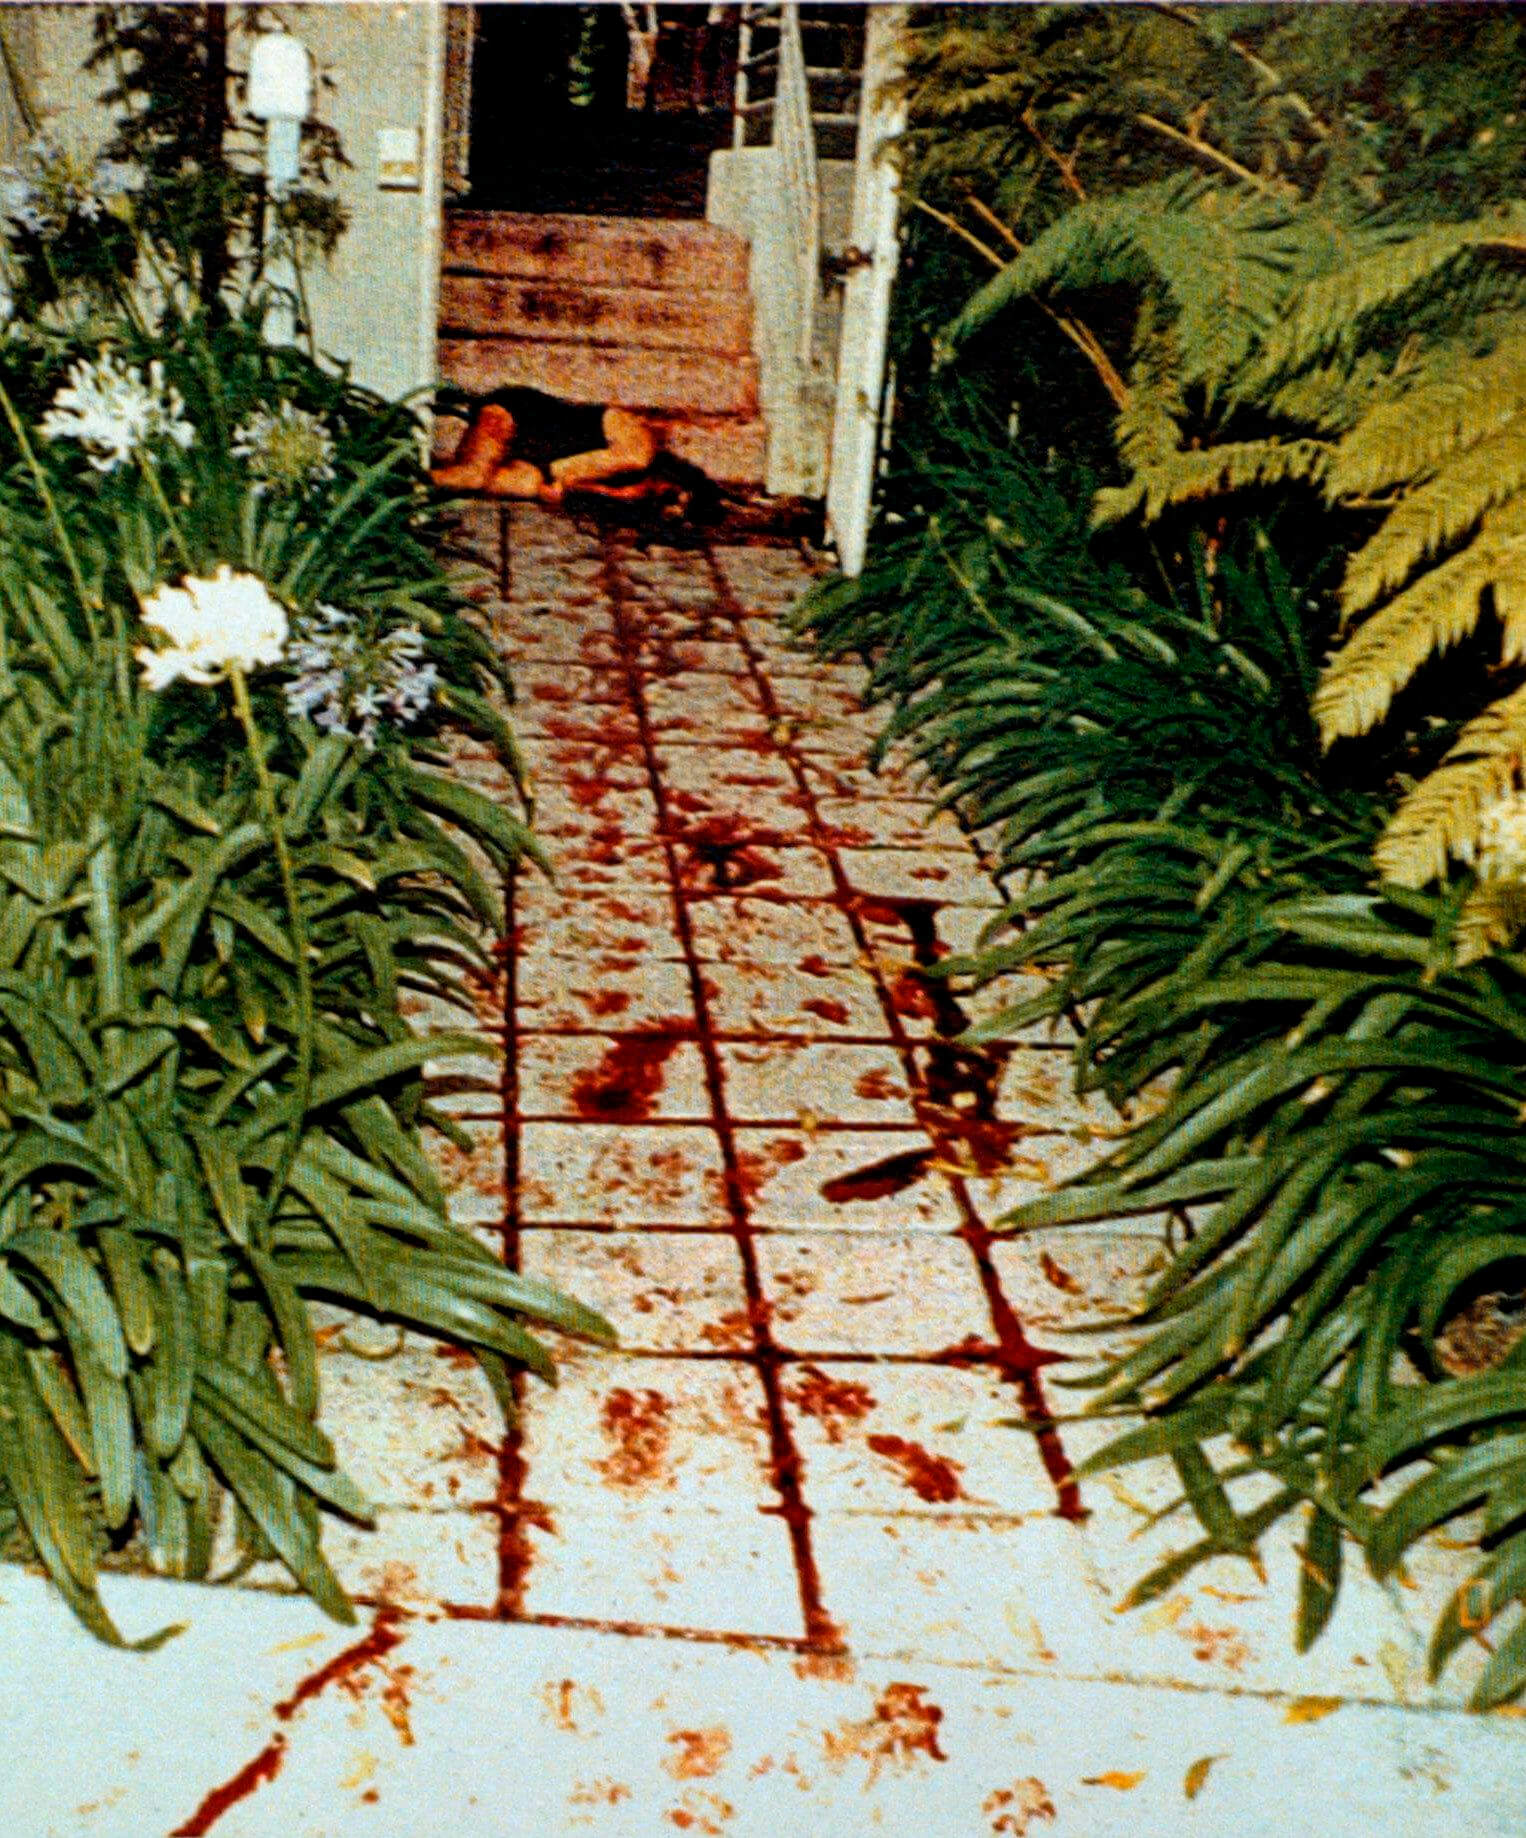 15 Chilling Crime Scene Photos Involving